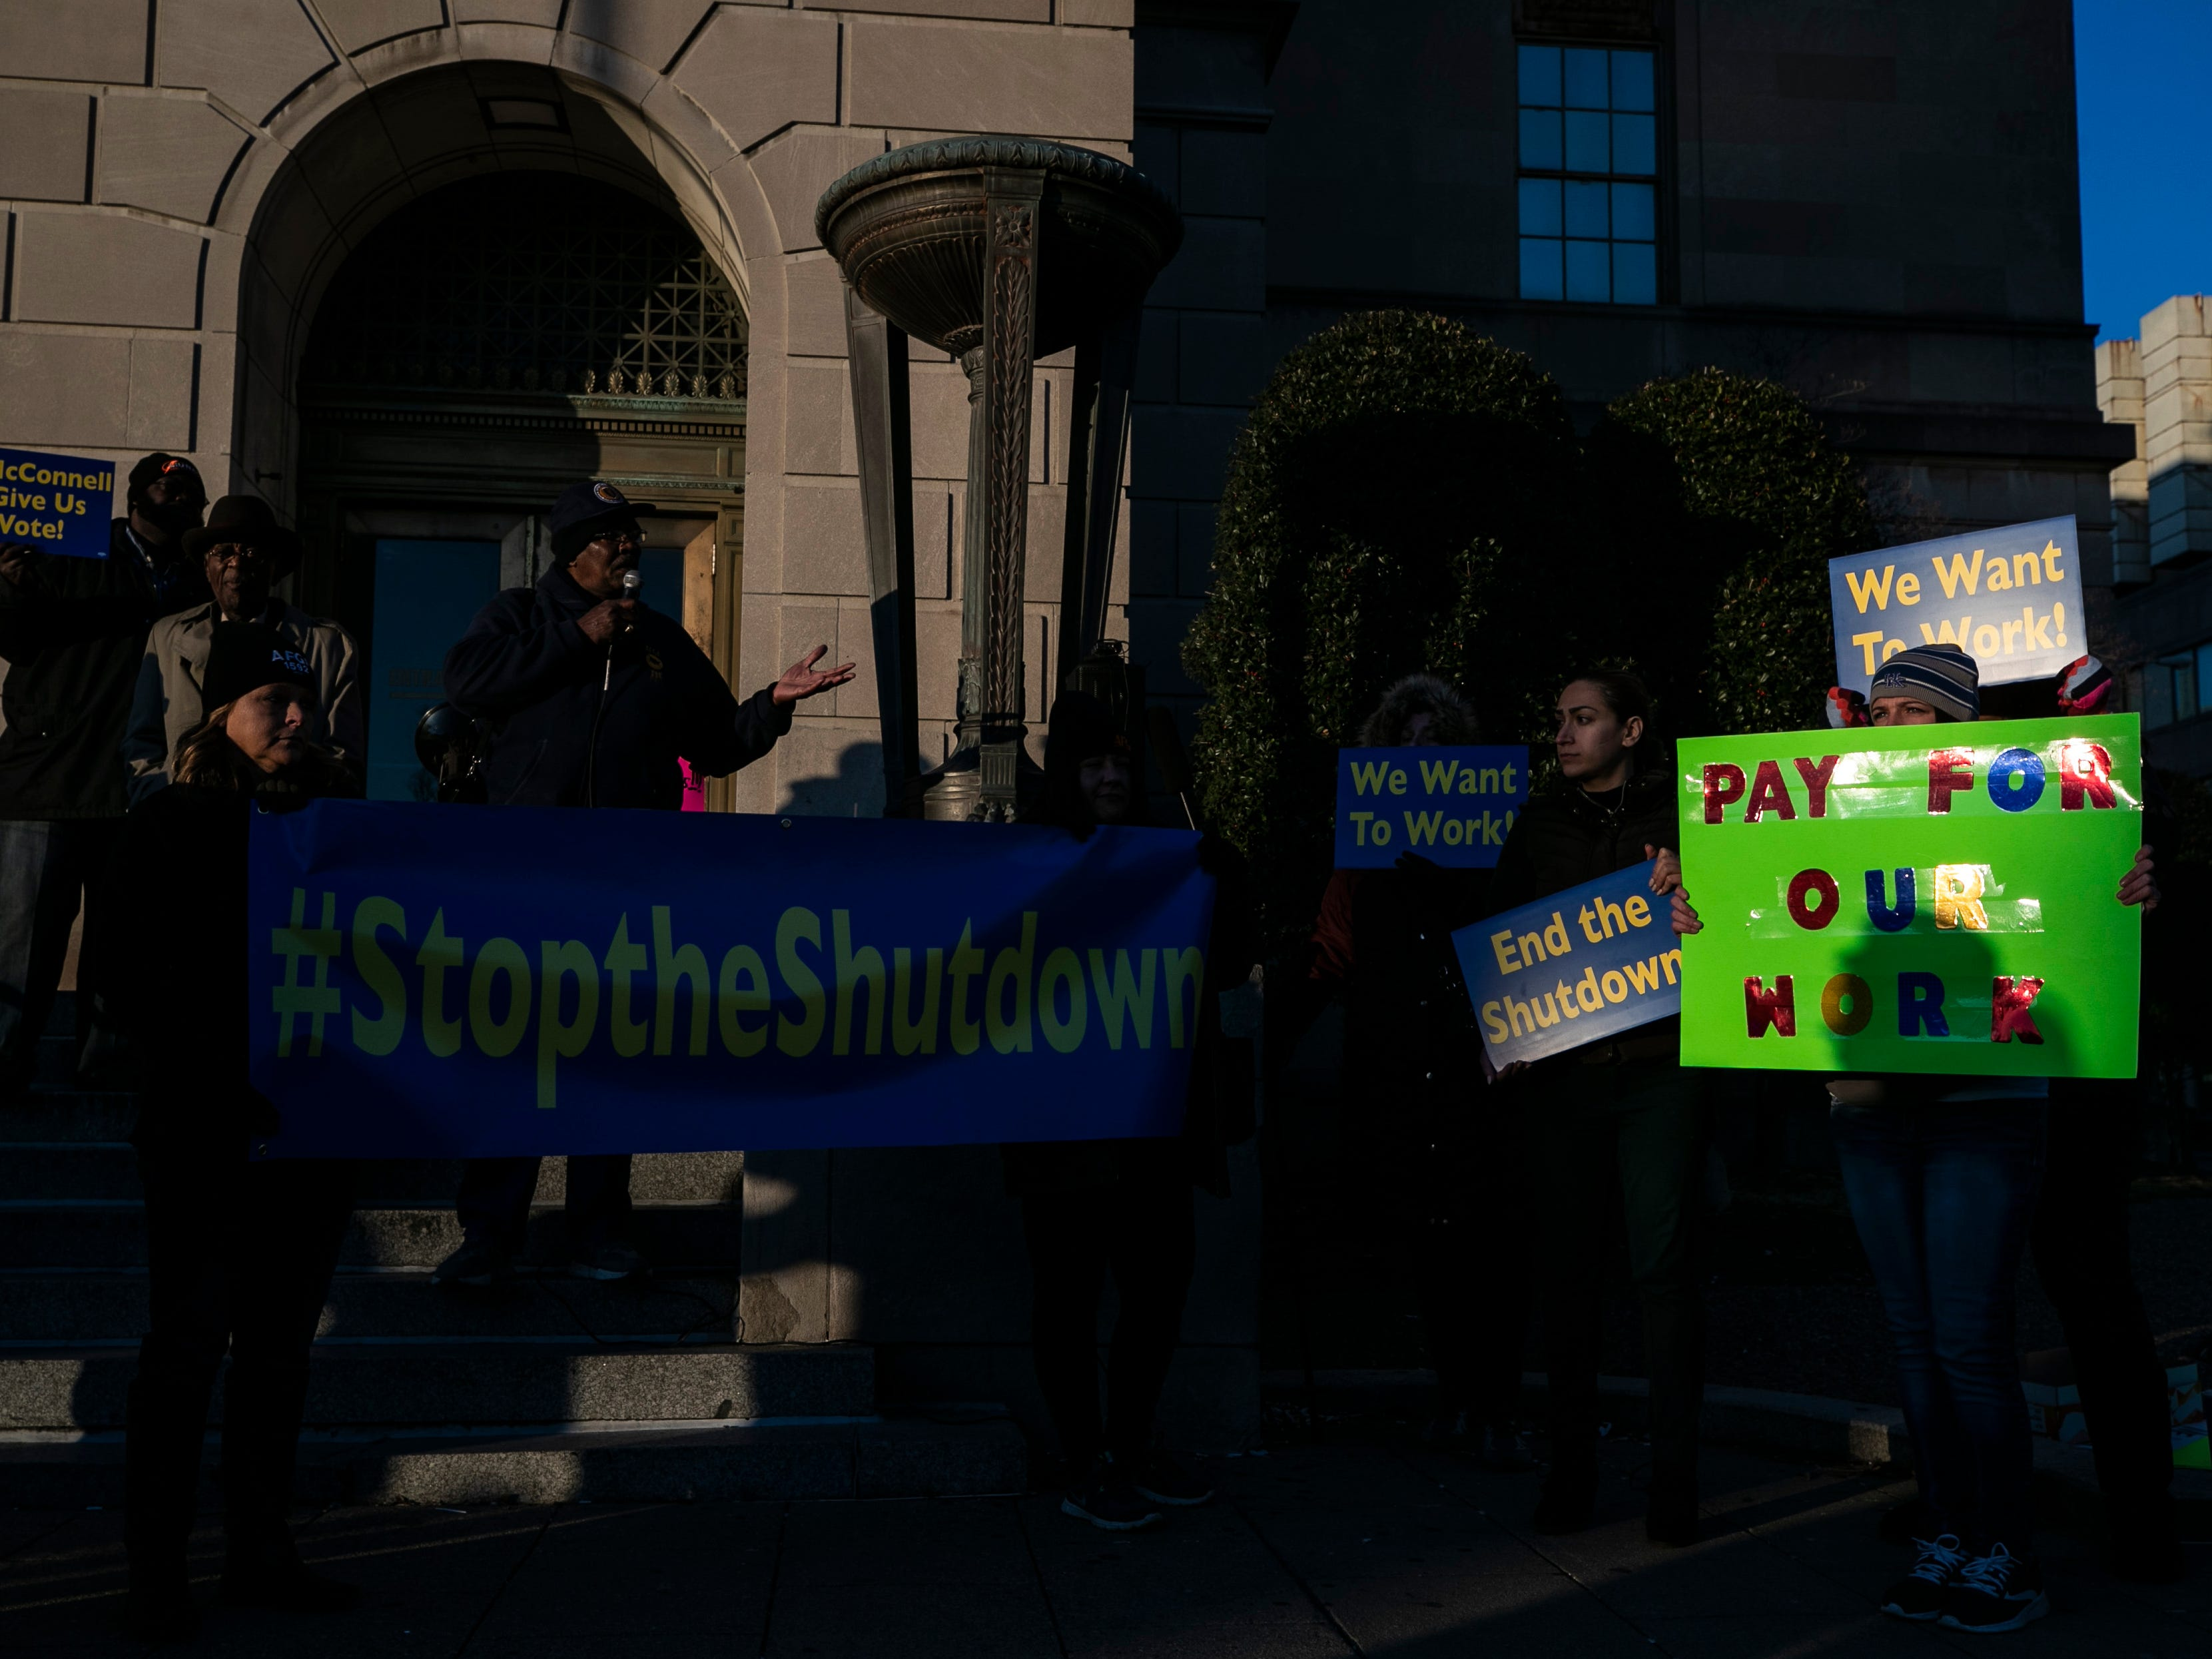 Frustrated federal employees of the government shutdown chanted 'End it now' and 'We want to work' outside Senate Majority leader Mitch McConnell's office Thursday afternoon. It was led by the American Federation of Government Employees local chapter. January 10, 2019